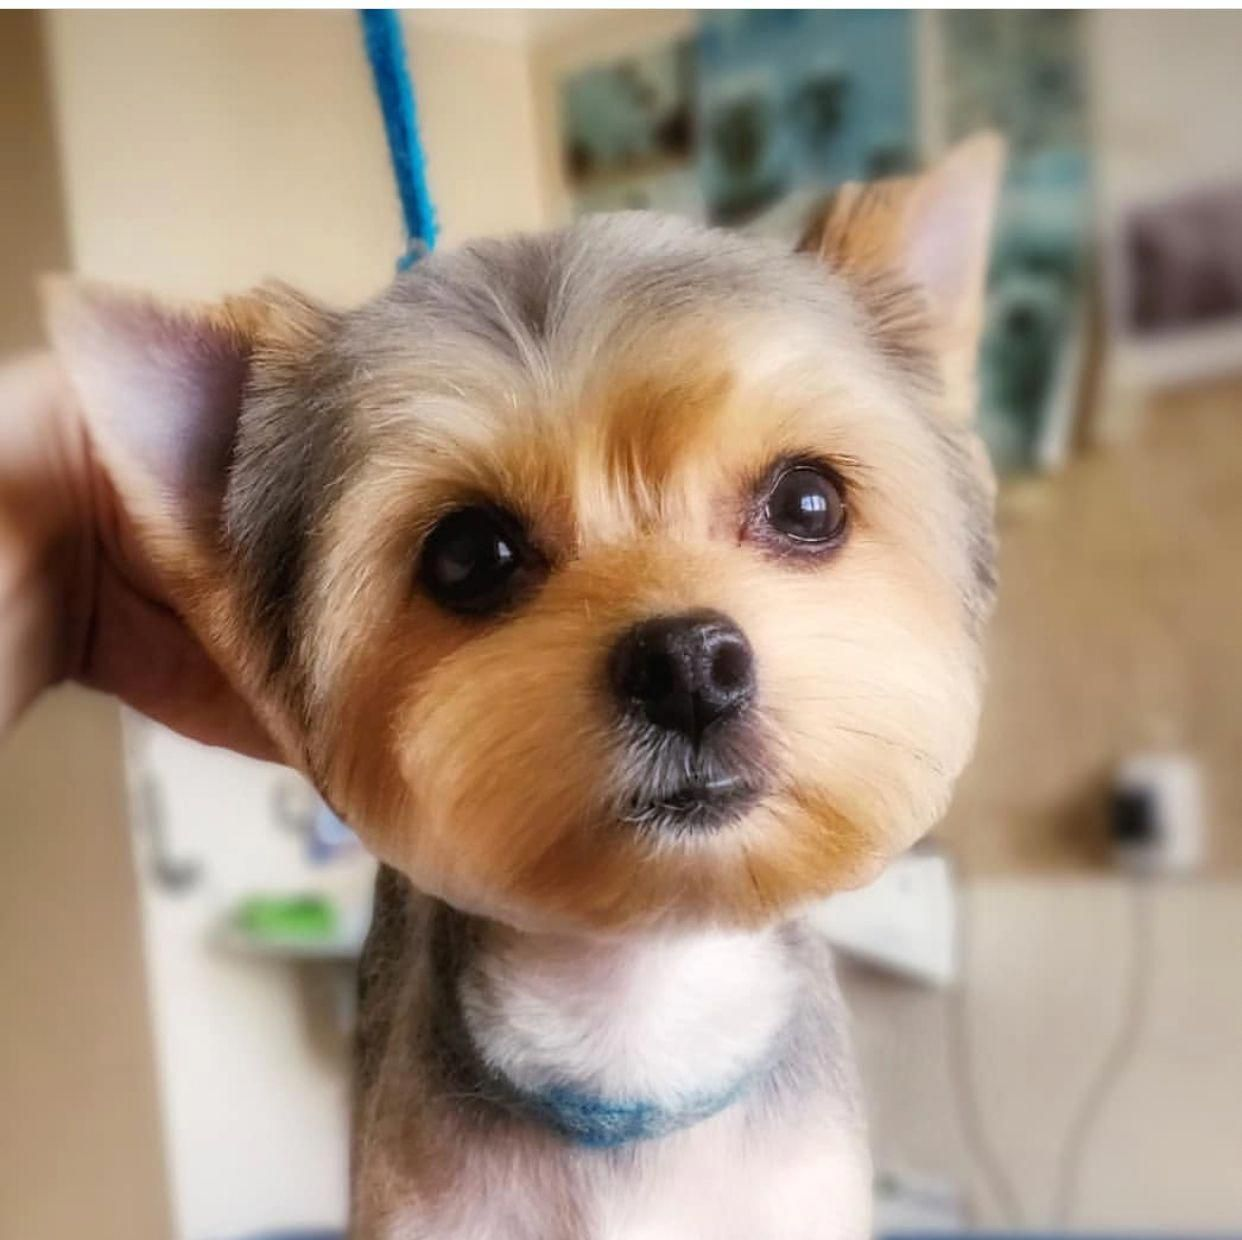 Yorkshire Terrier Energetic And Affectionate Yorkie Dogs Dog Grooming Styles Yorkshire Terrier Dog